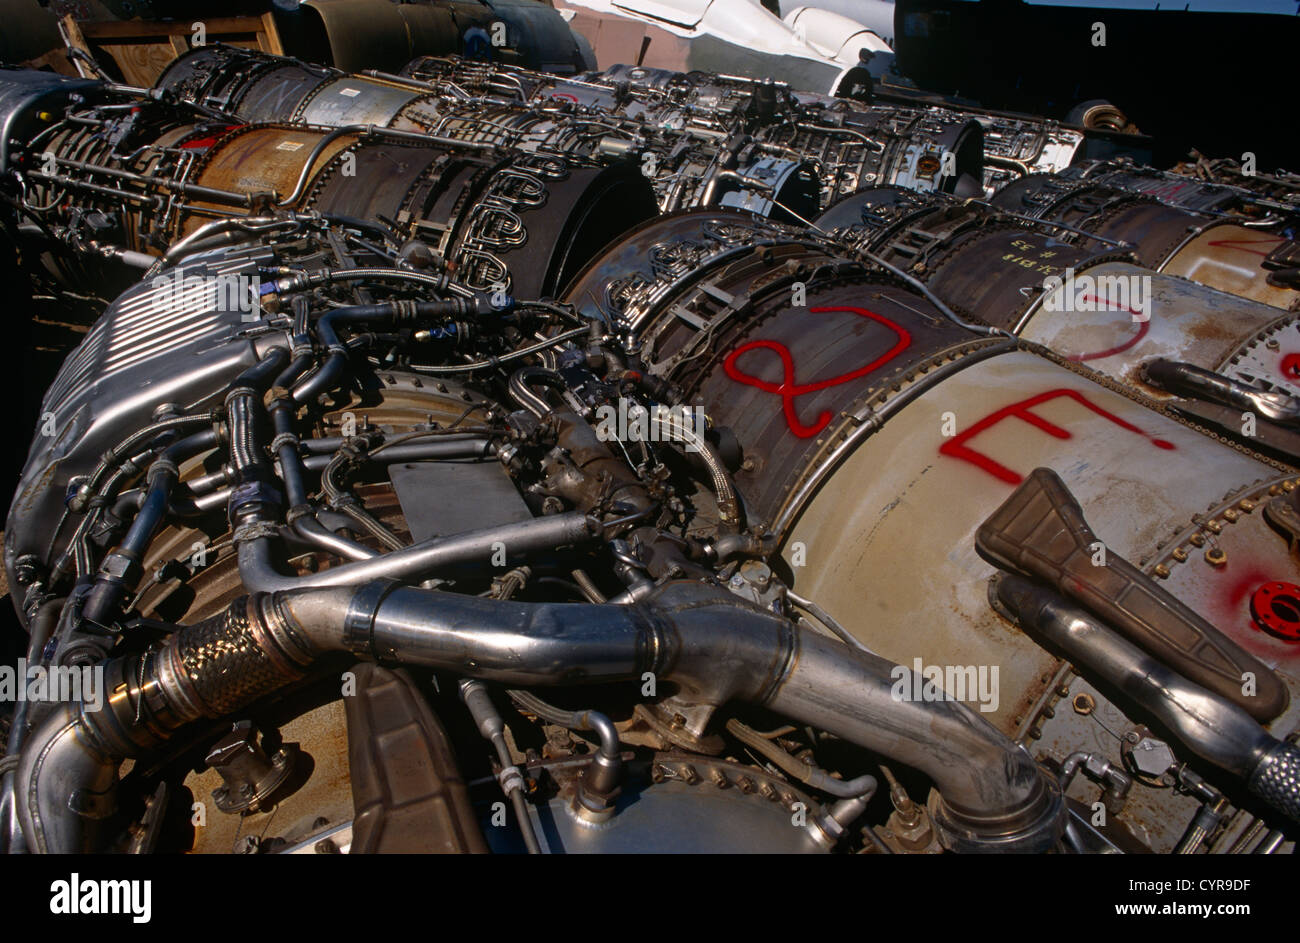 Military jet fighter engines awaiting recycling for scrap value in ...